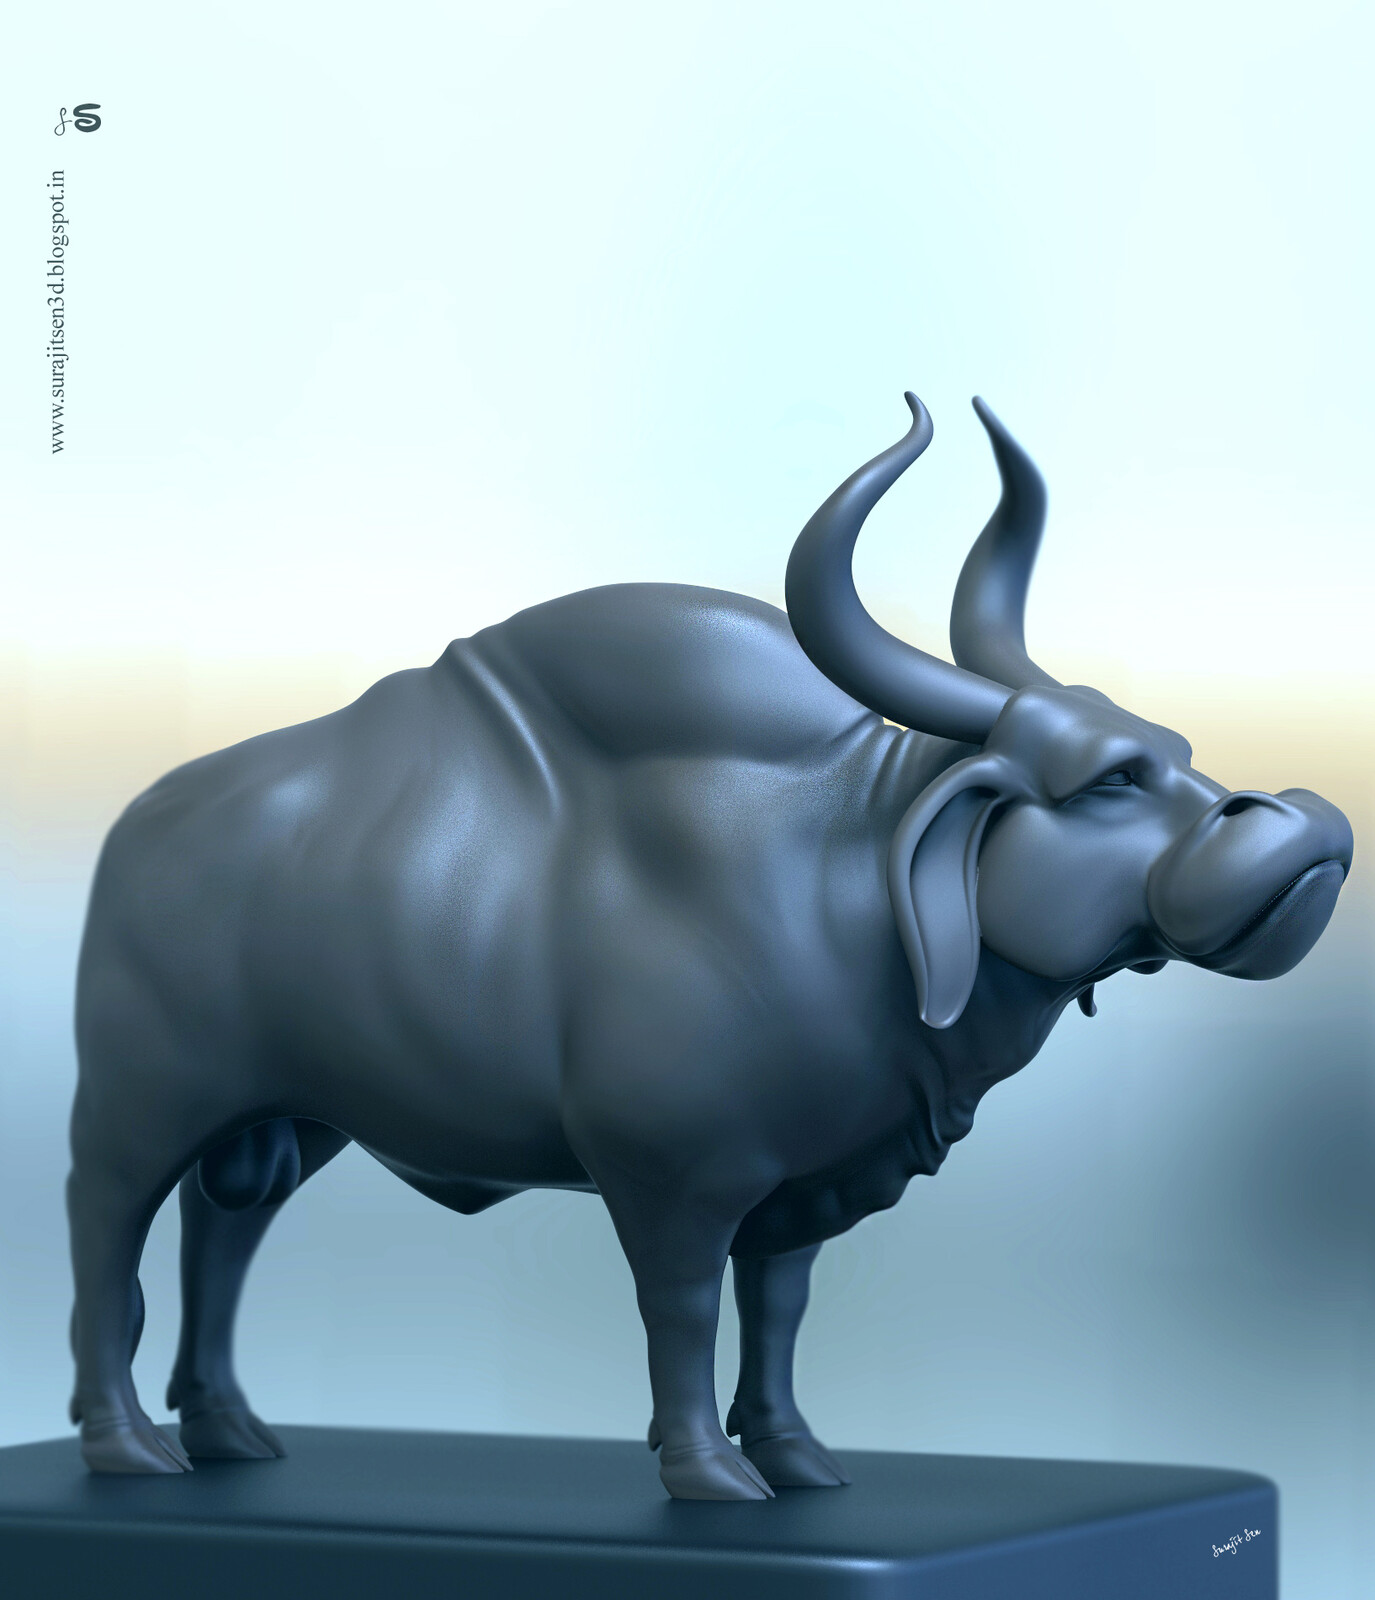 """#digitalsculpting #doodle #quicksculpt #study  Wish to share a snap of my recent Digital Sculpt study. ....""""Ancient Bull"""". Tried to make a form of my thoughts :)"""